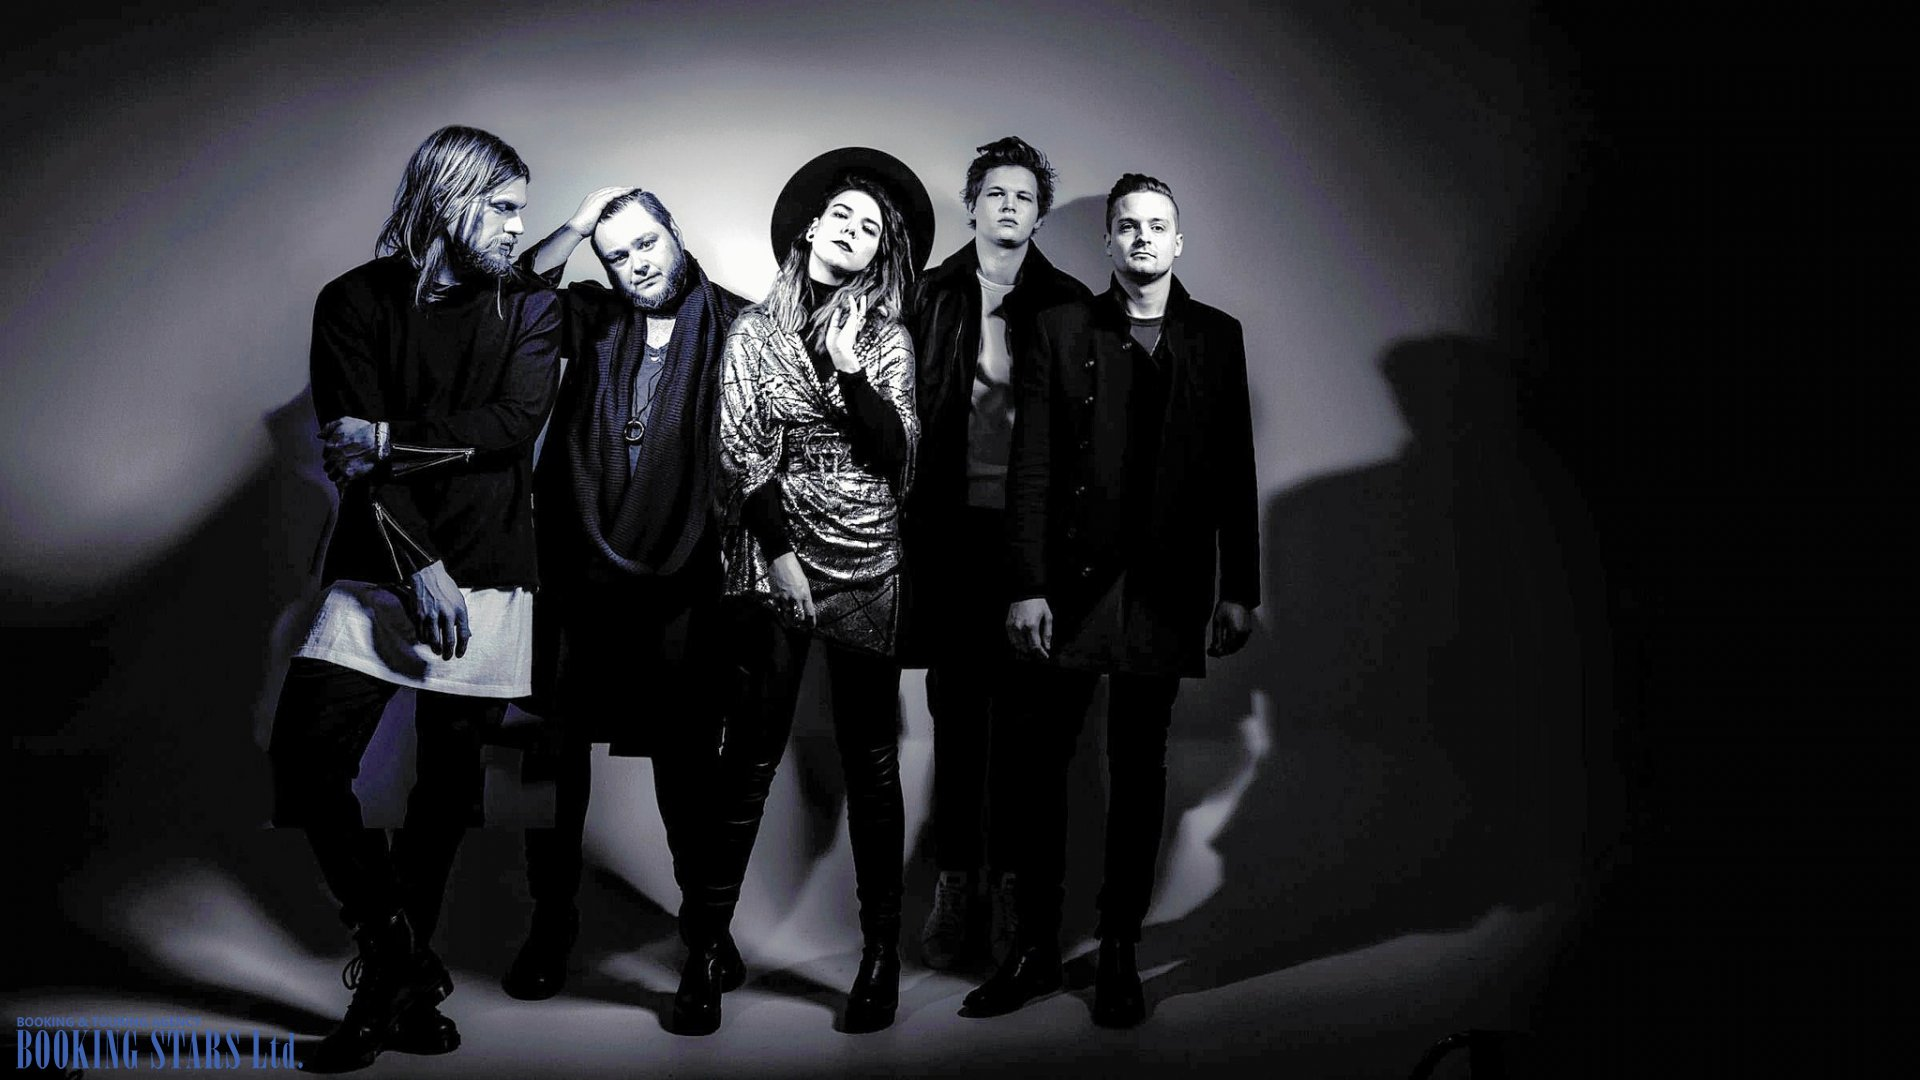 Booking Stars Ltd Booking Touring Agency Of Monsters And Men